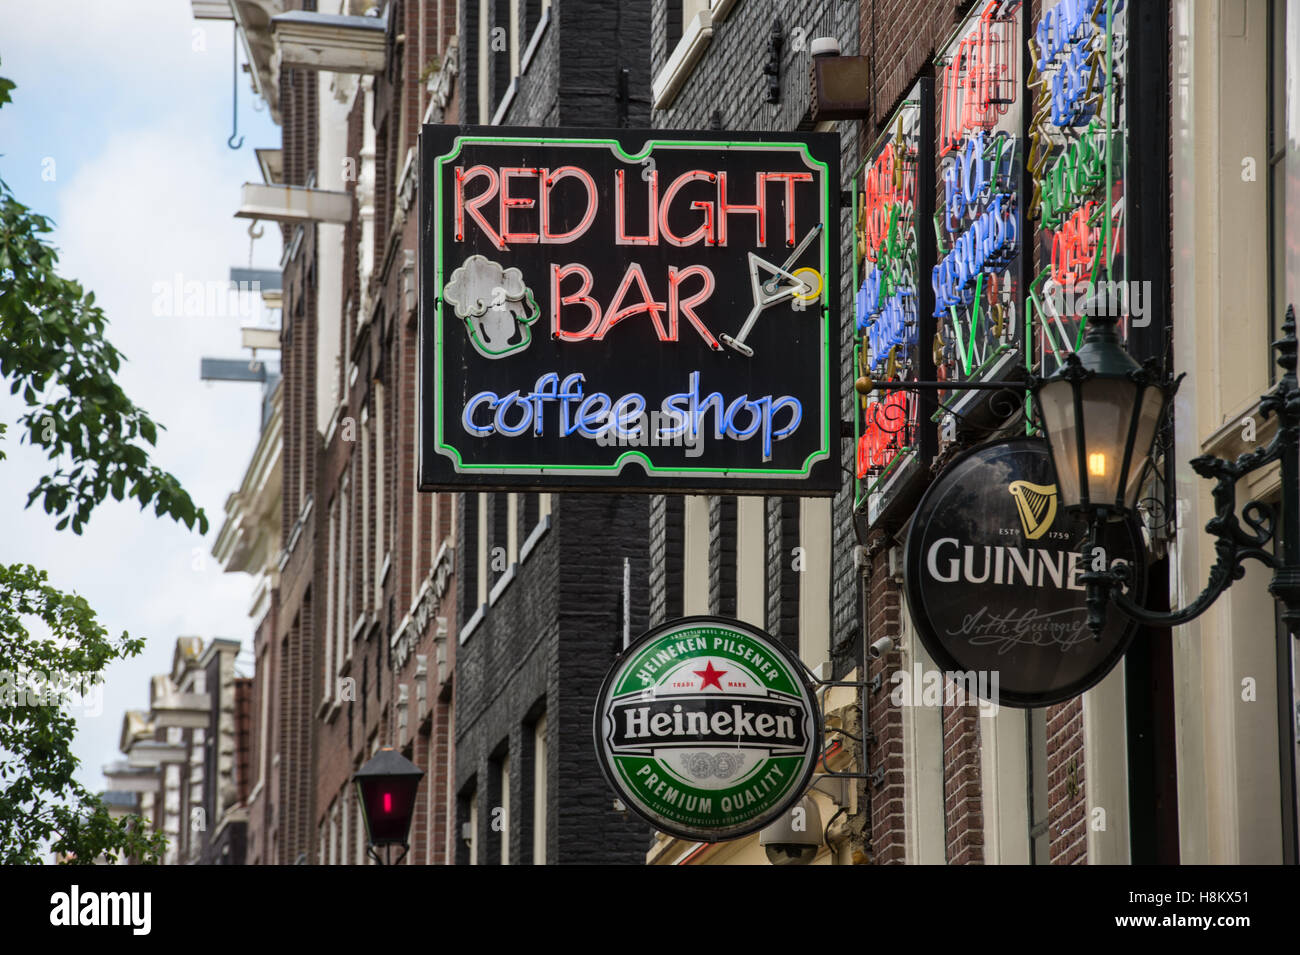 Amsterdam netherlands neon sign for the red light bar coffee shop amsterdam netherlands neon sign for the red light bar coffee shop located in the red light district aloadofball Gallery